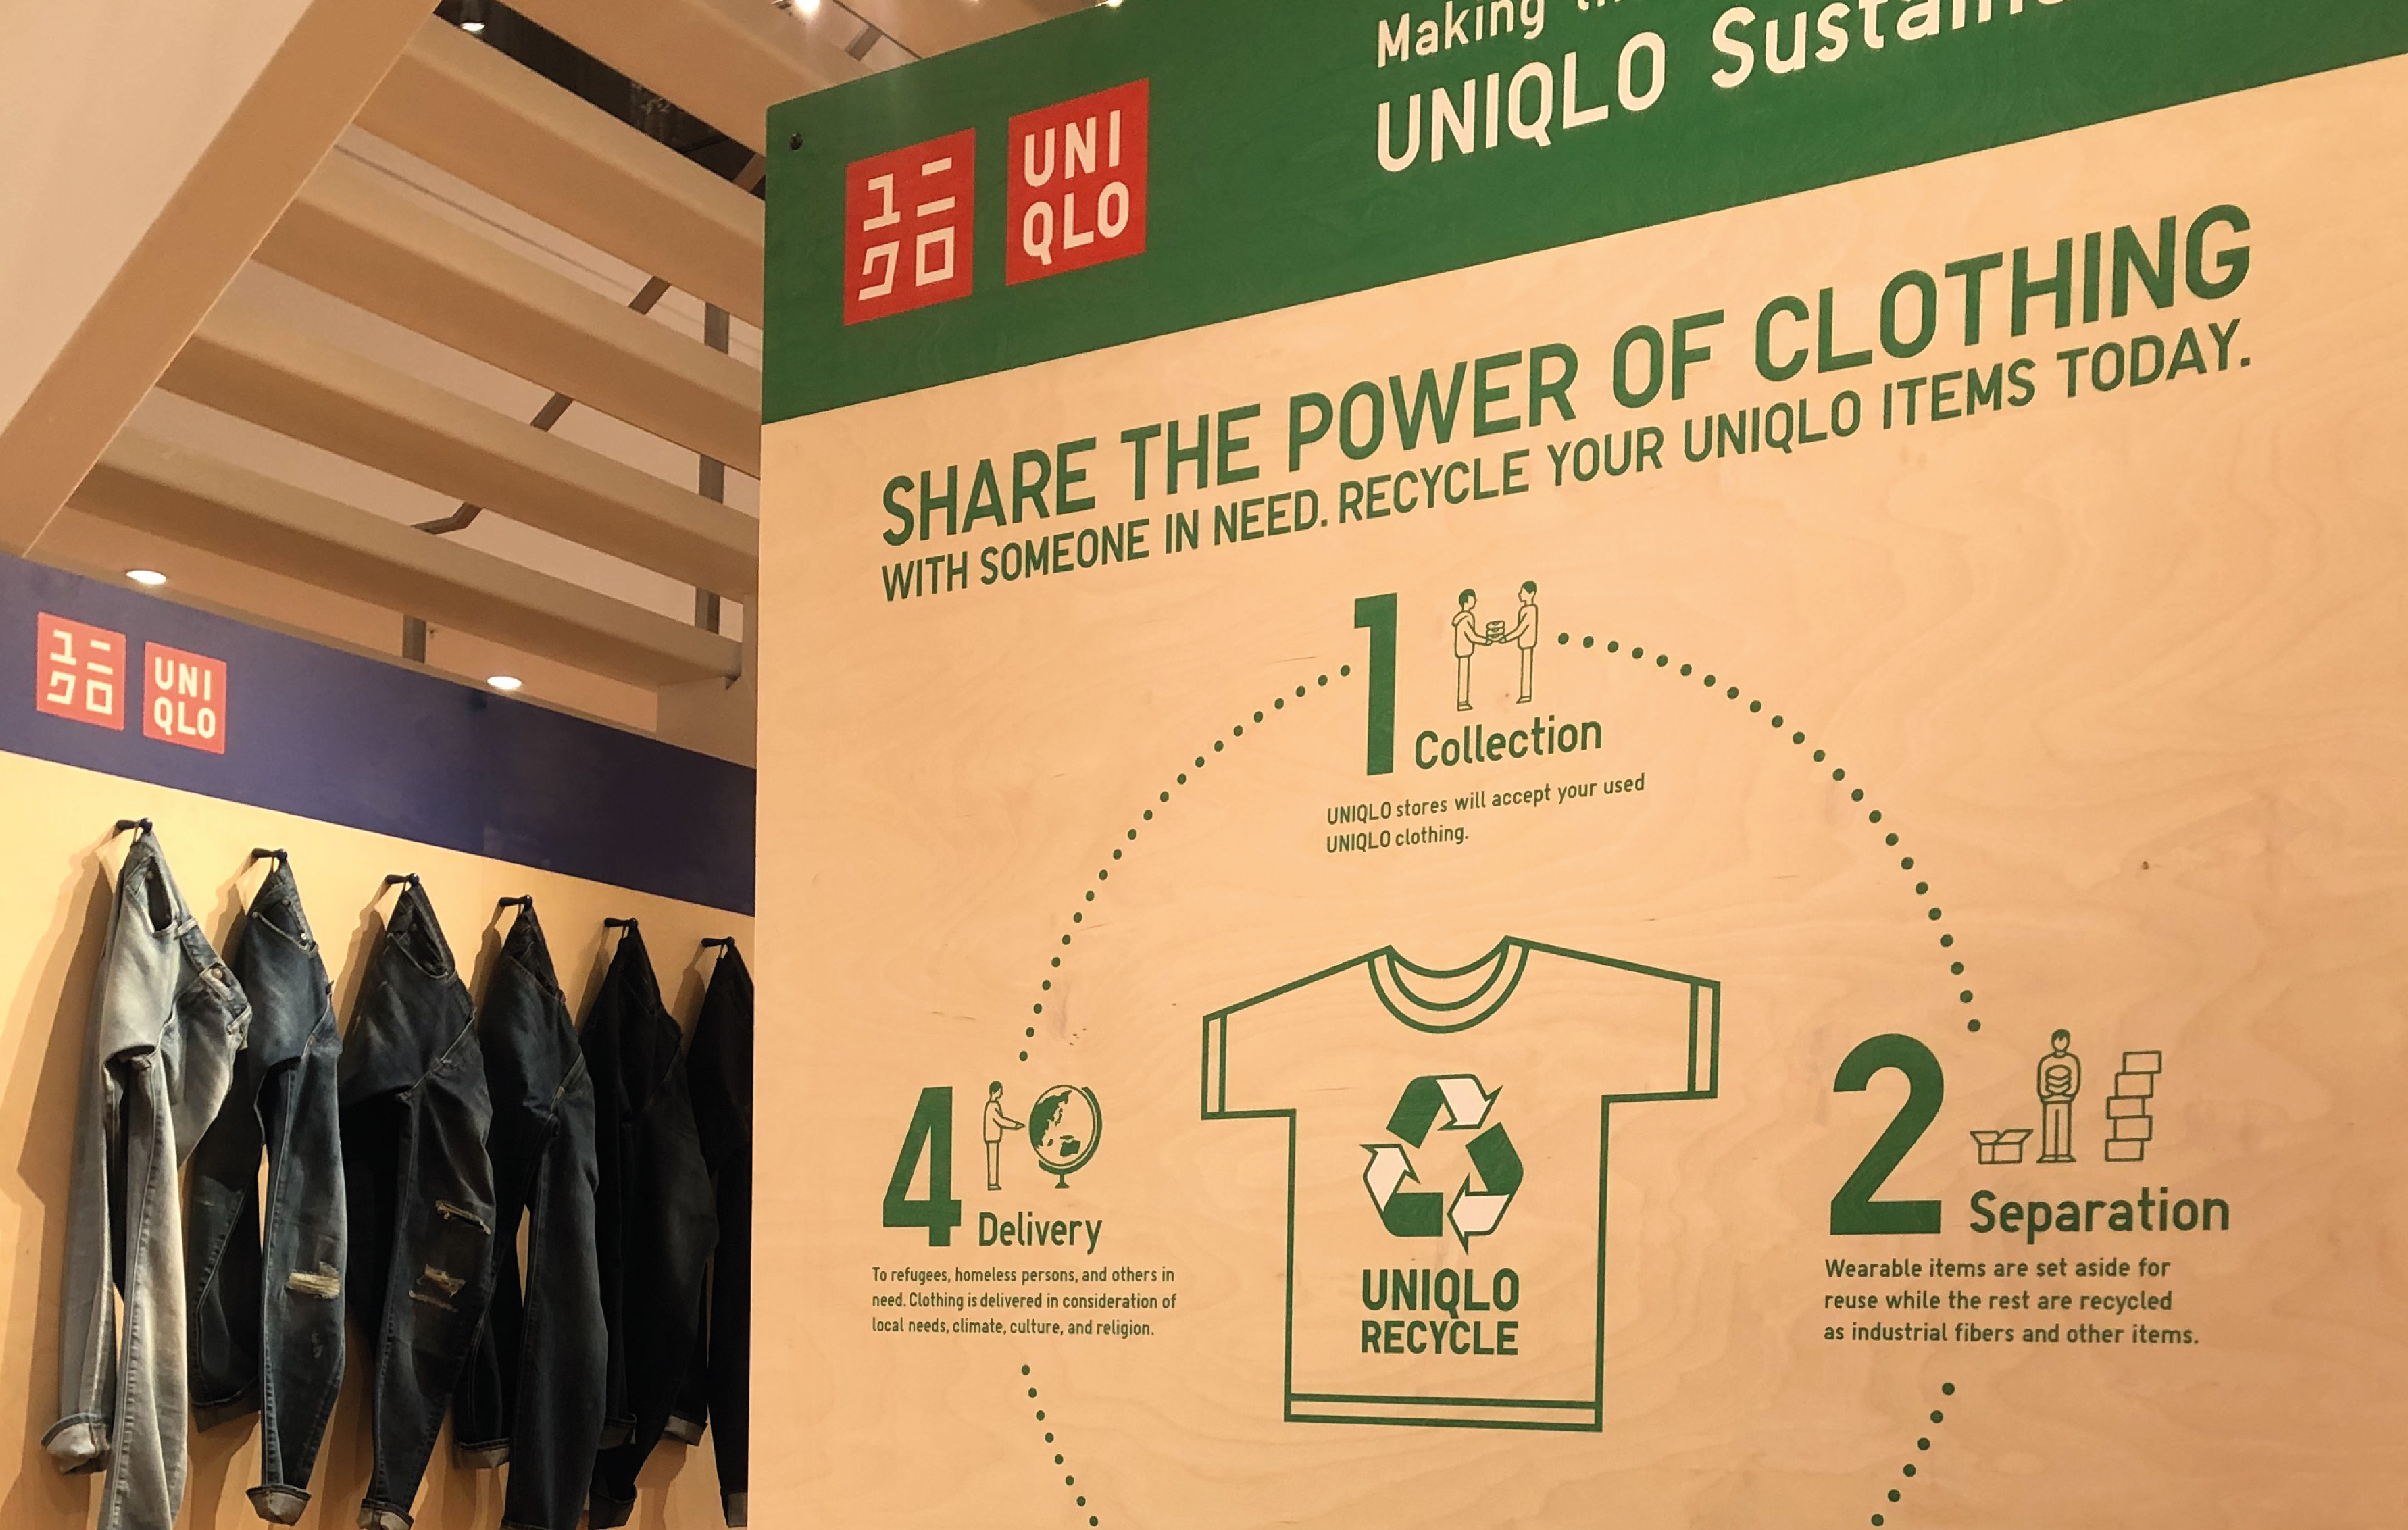 UNIQLO MANCHESTER SUSTAIN WOODEN PRINT DETAIL